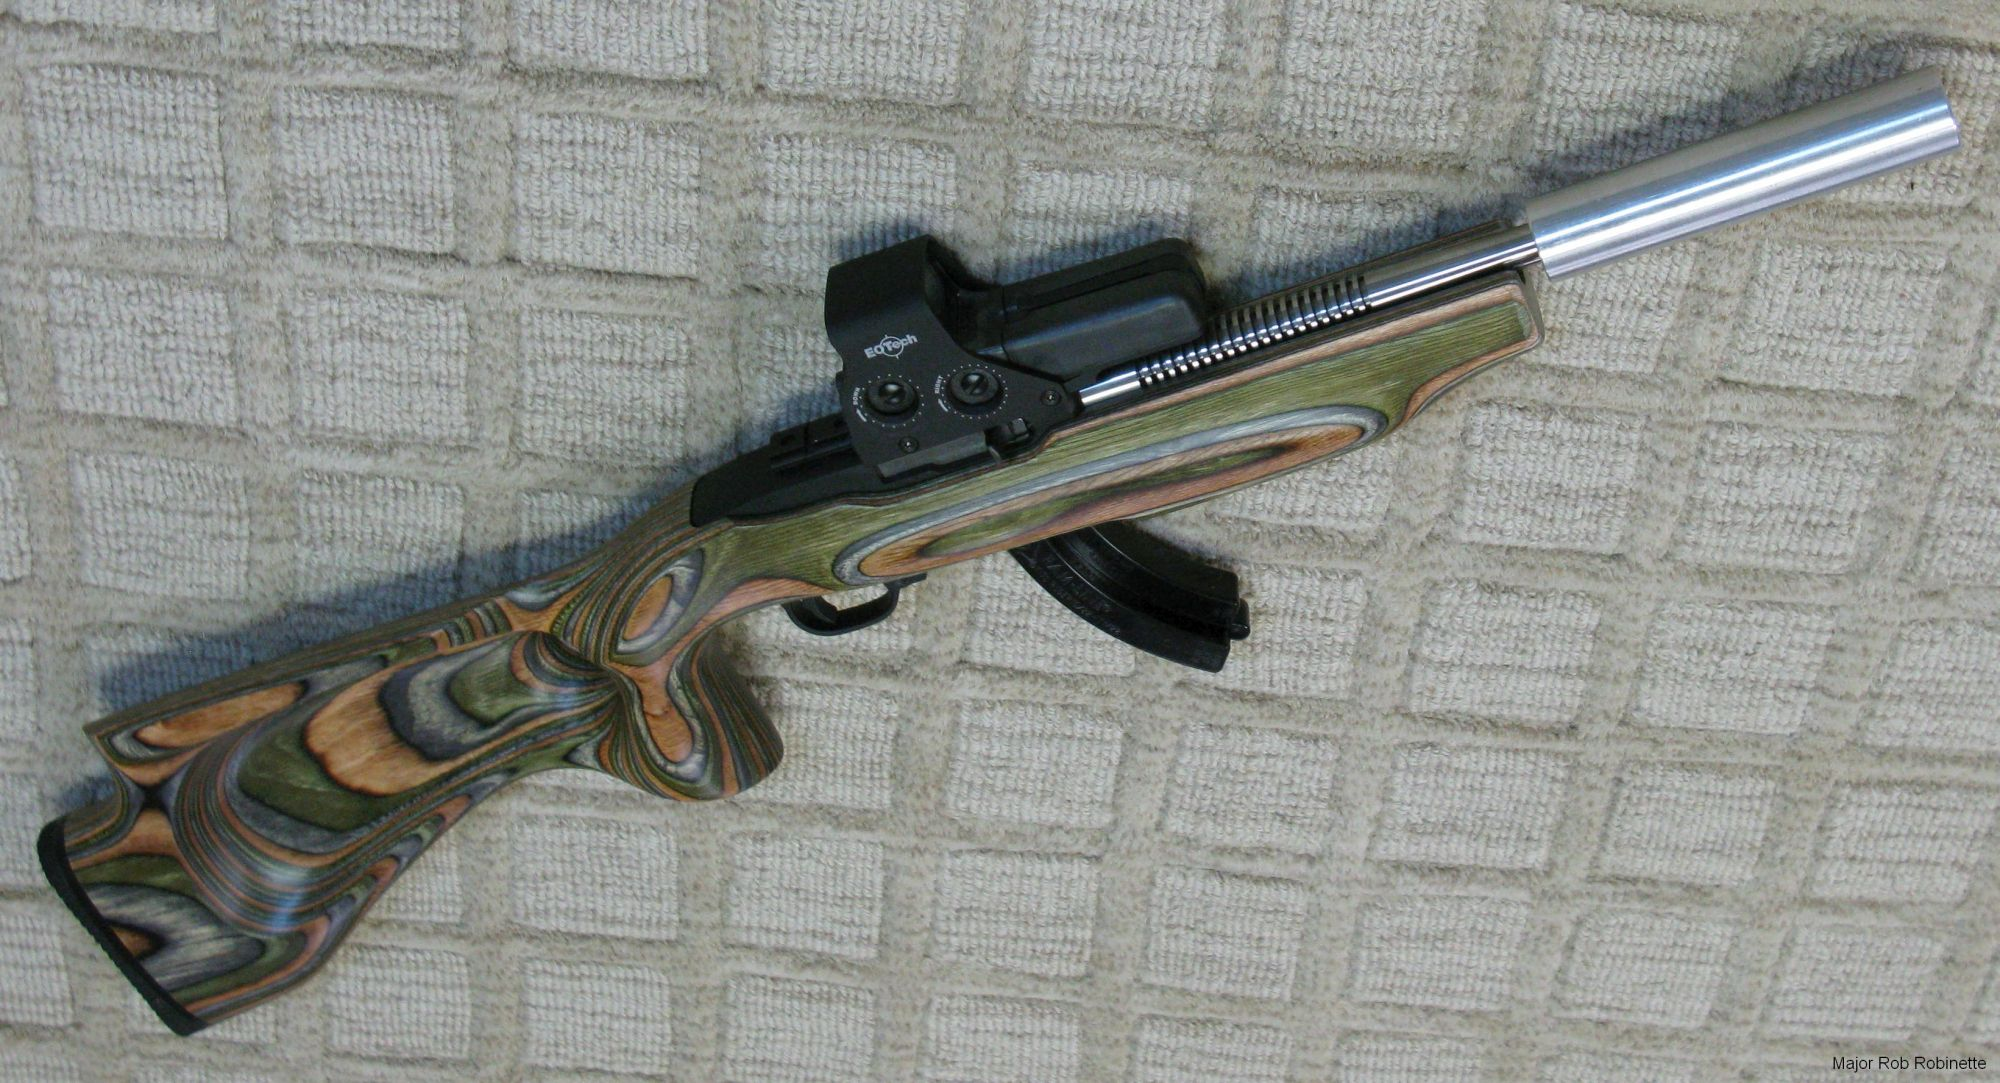 hight resolution of this is a shorter 6 inch long by 1 1 4 inch 22 suppressor i made with form 1 tax stamp mounted on my nfa registered short barreled rifle ruger 10 22 with